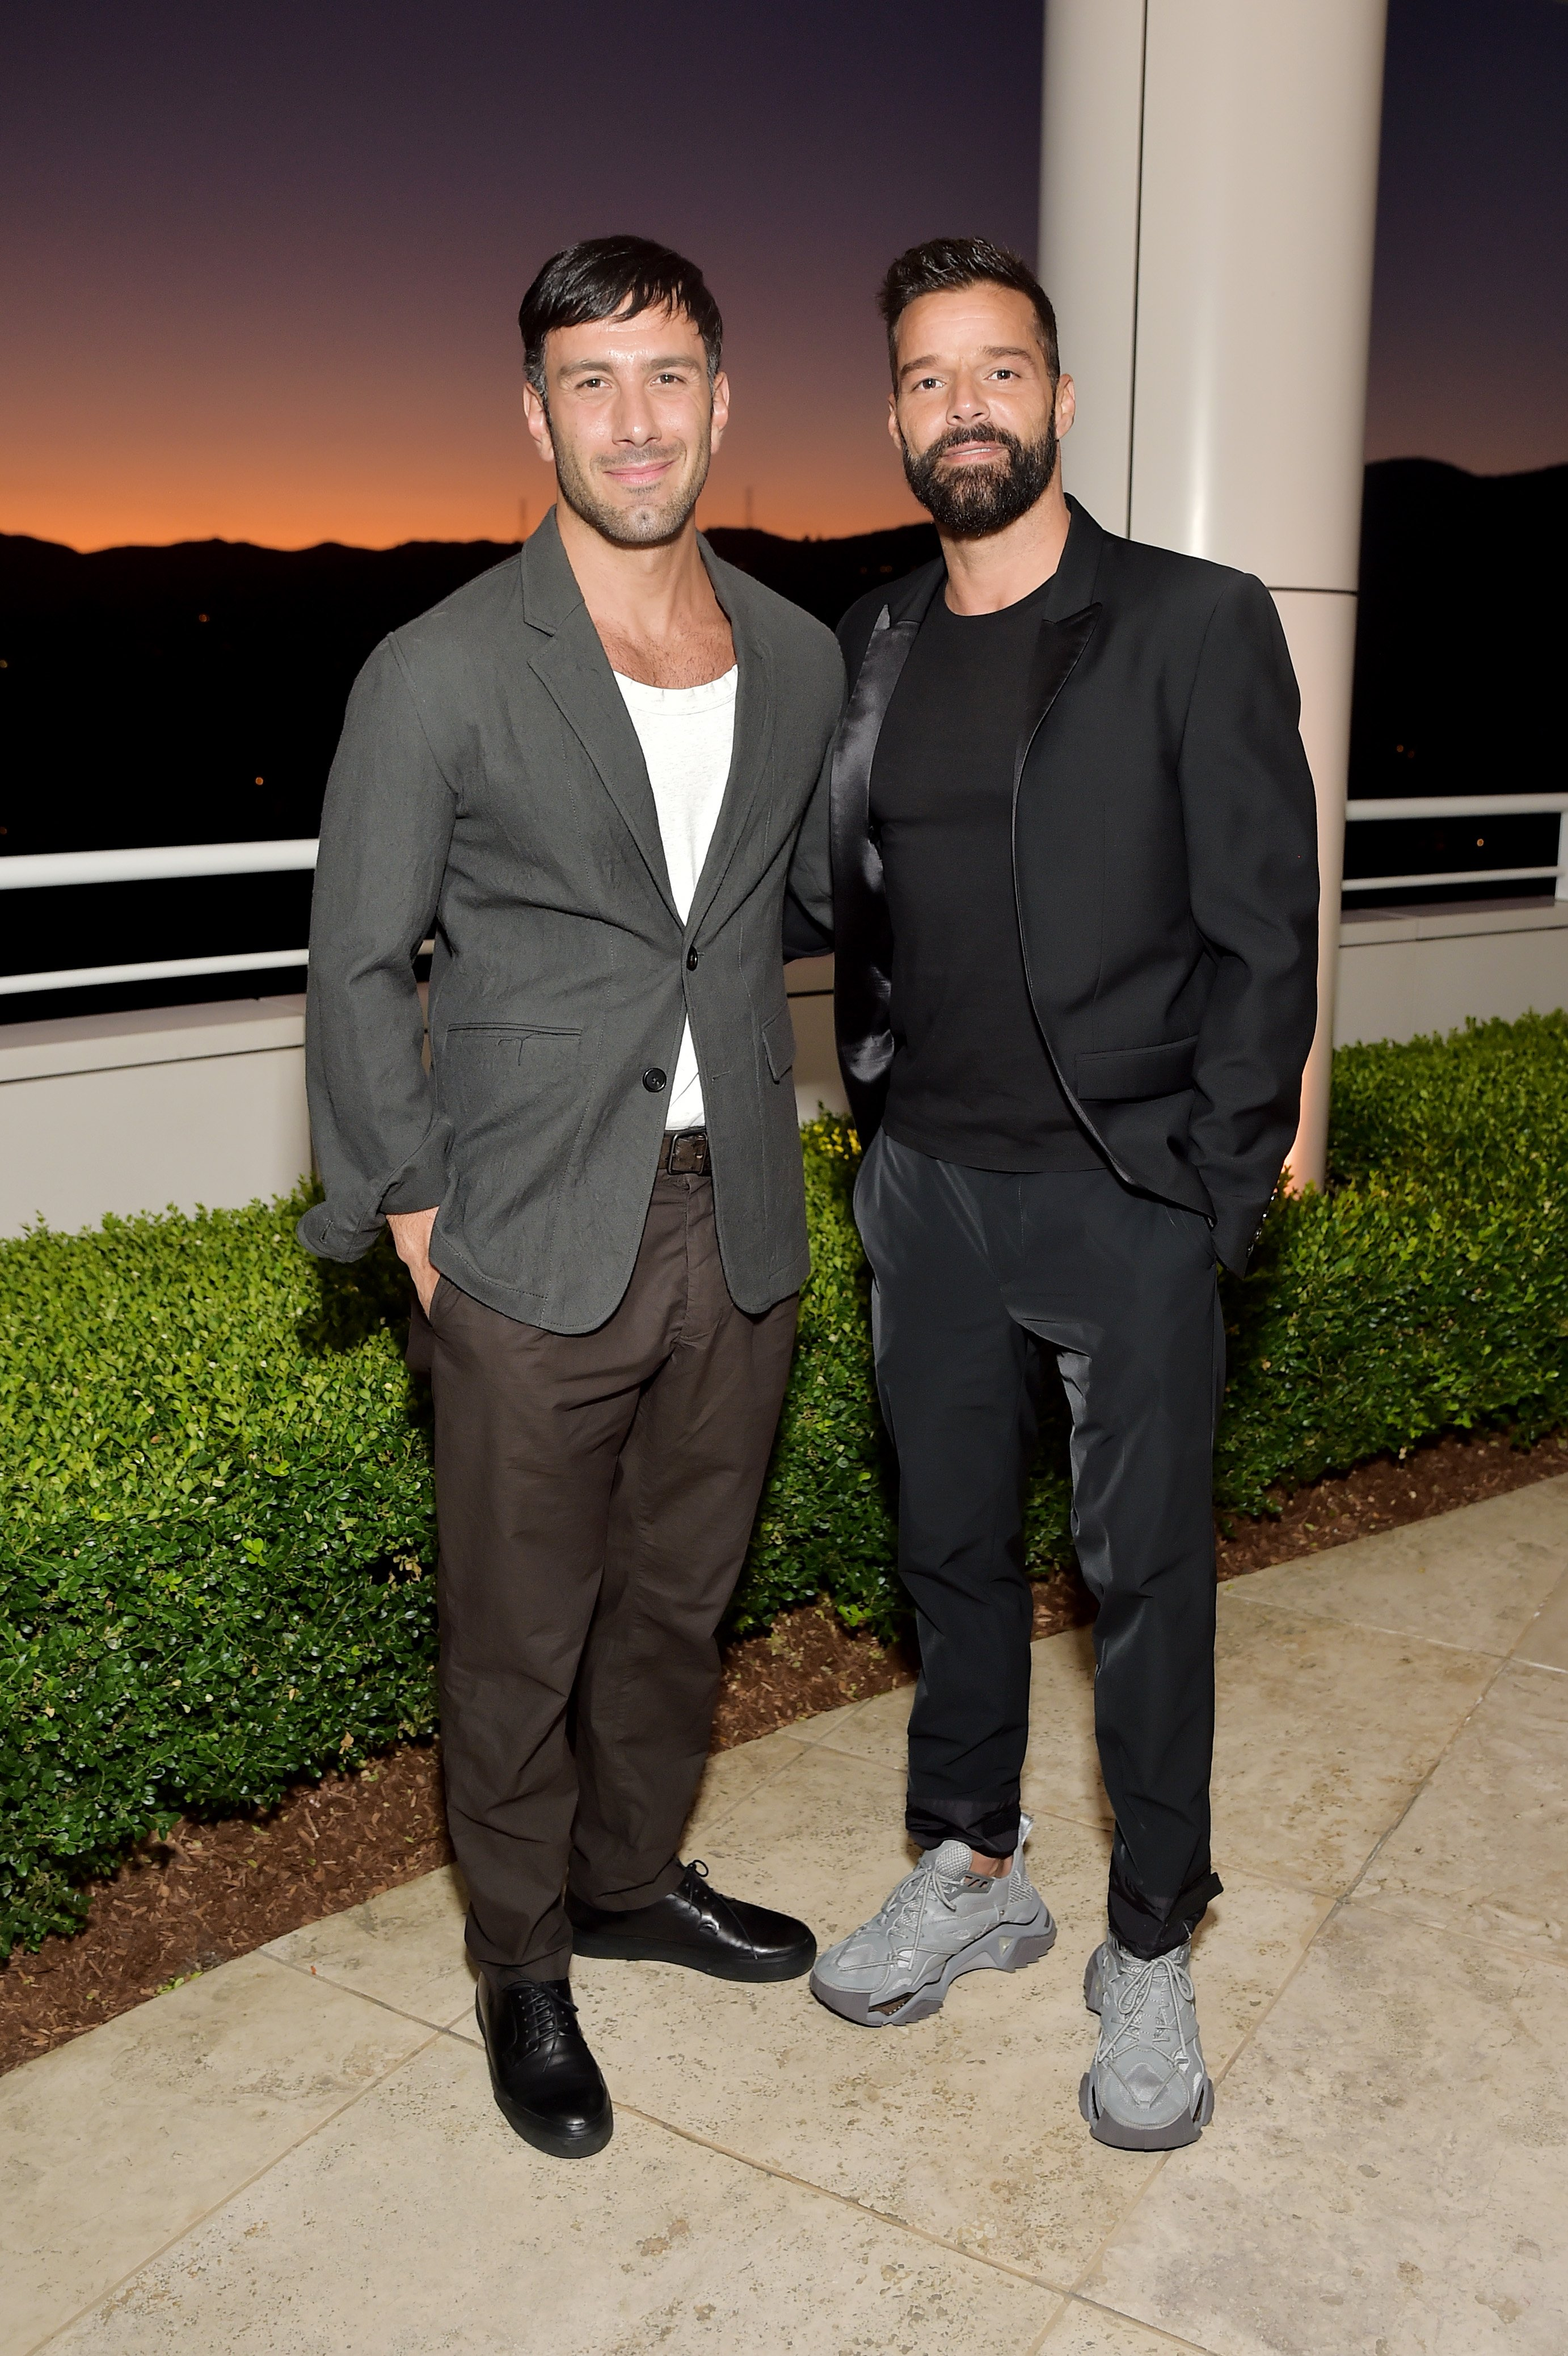 Jwan Yosef and Ricky Martin attend The J. Paul Getty Medal Dinner on September 16, 2019. | Photo: Getty Images